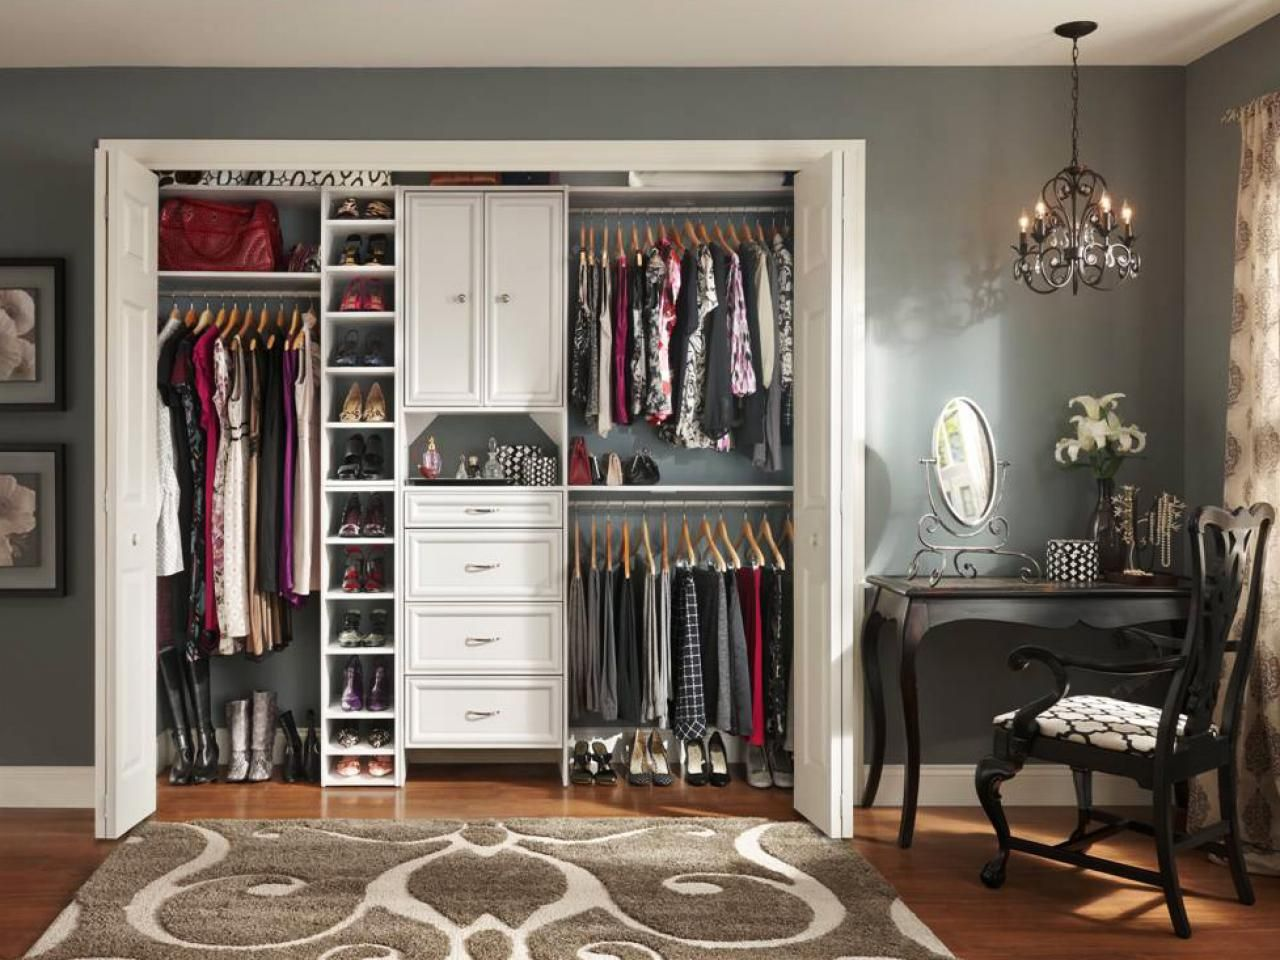 Stunning Small Closet Organization Ideas    https   midcityeast com stunning   Small Master BedroomSmall. Stunning Small Closet Organization Ideas   https   midcityeast com